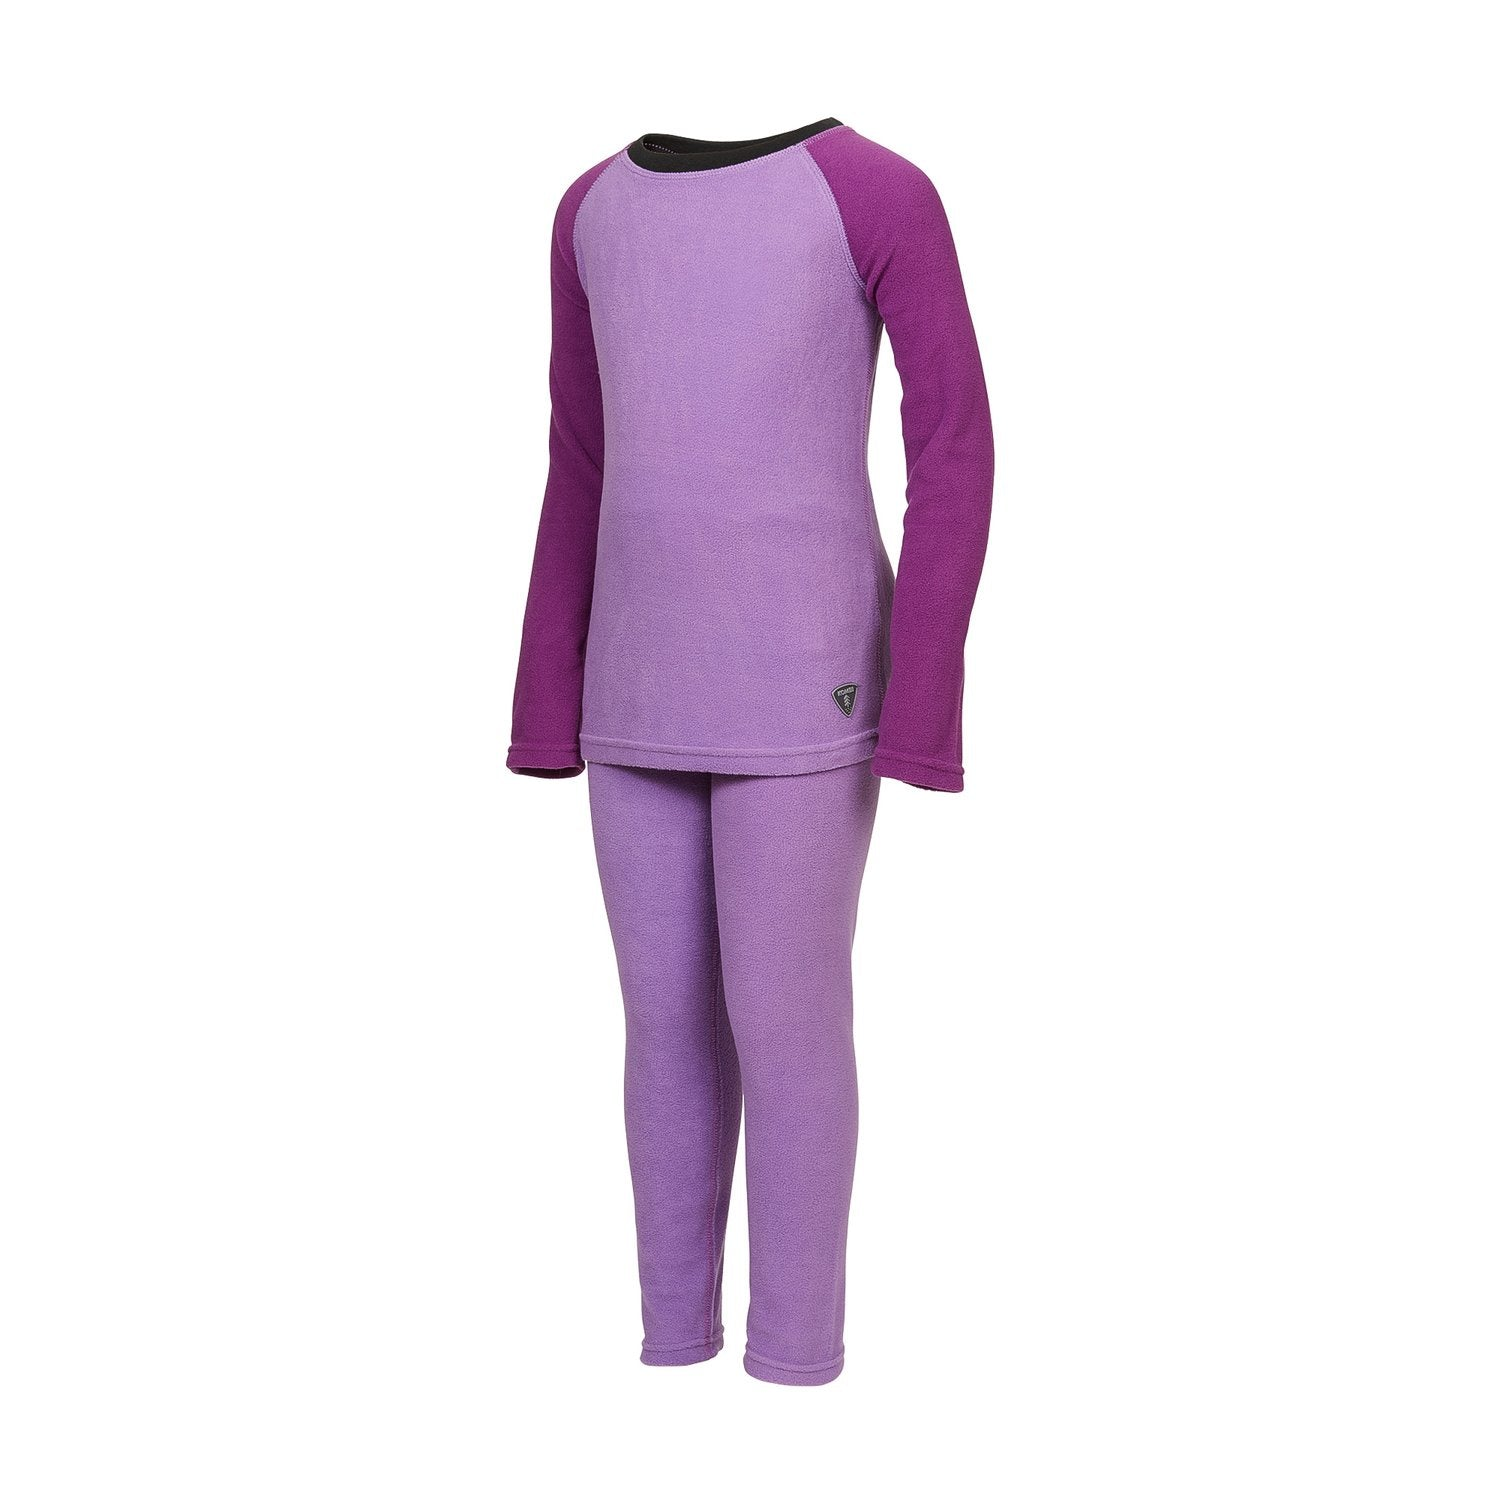 Kombi 2020 Junior Cozy Fleece Baselayer Set